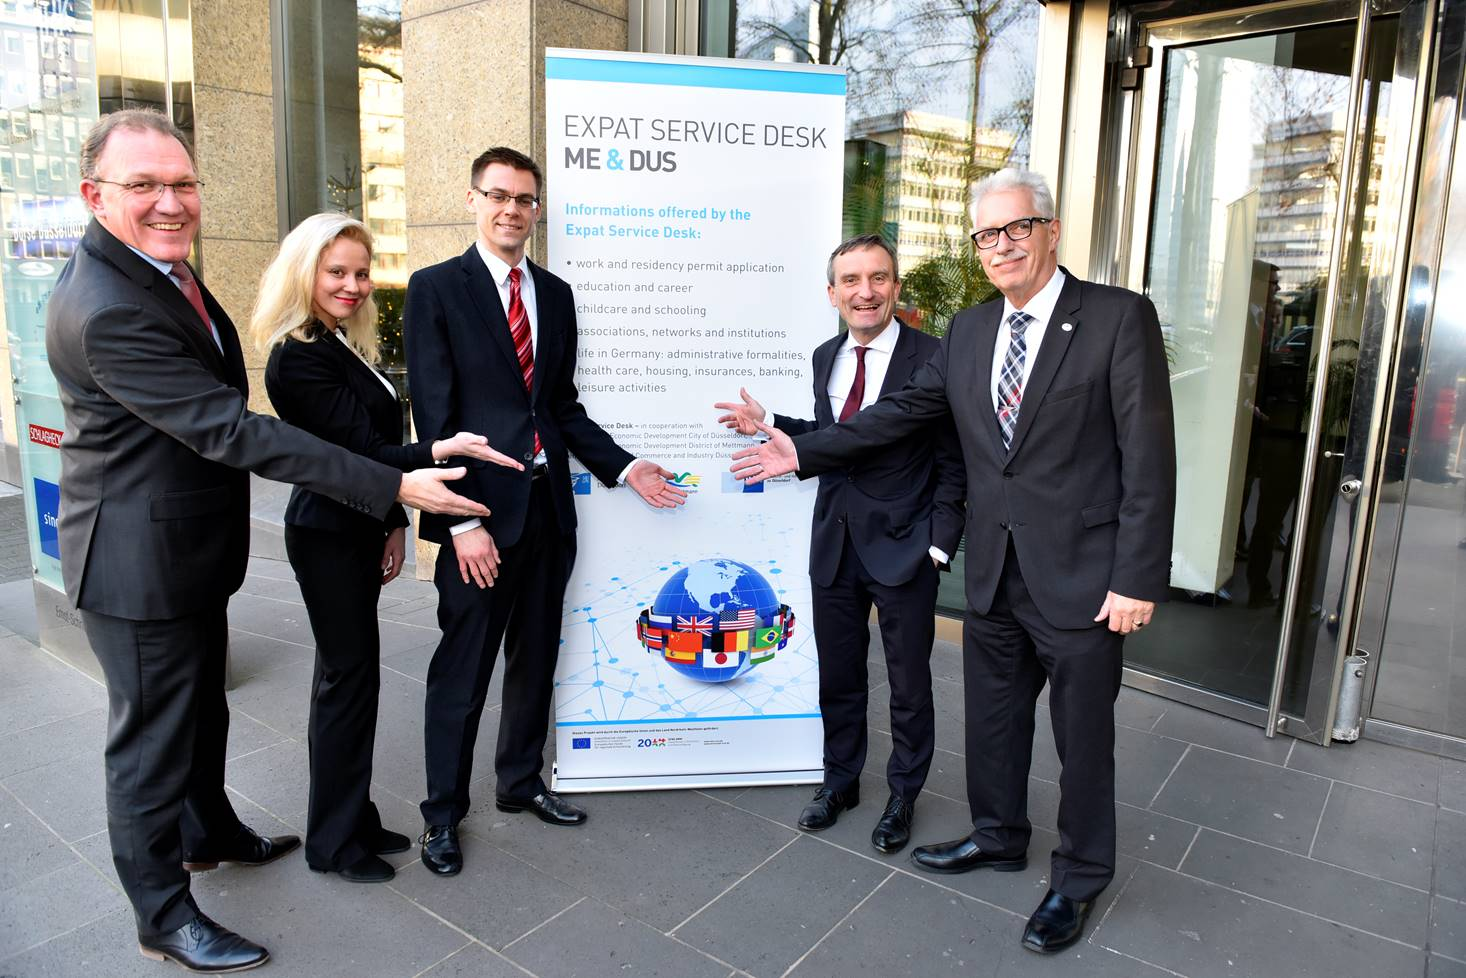 Get to Know The Expat Service Desk in Düsseldorf